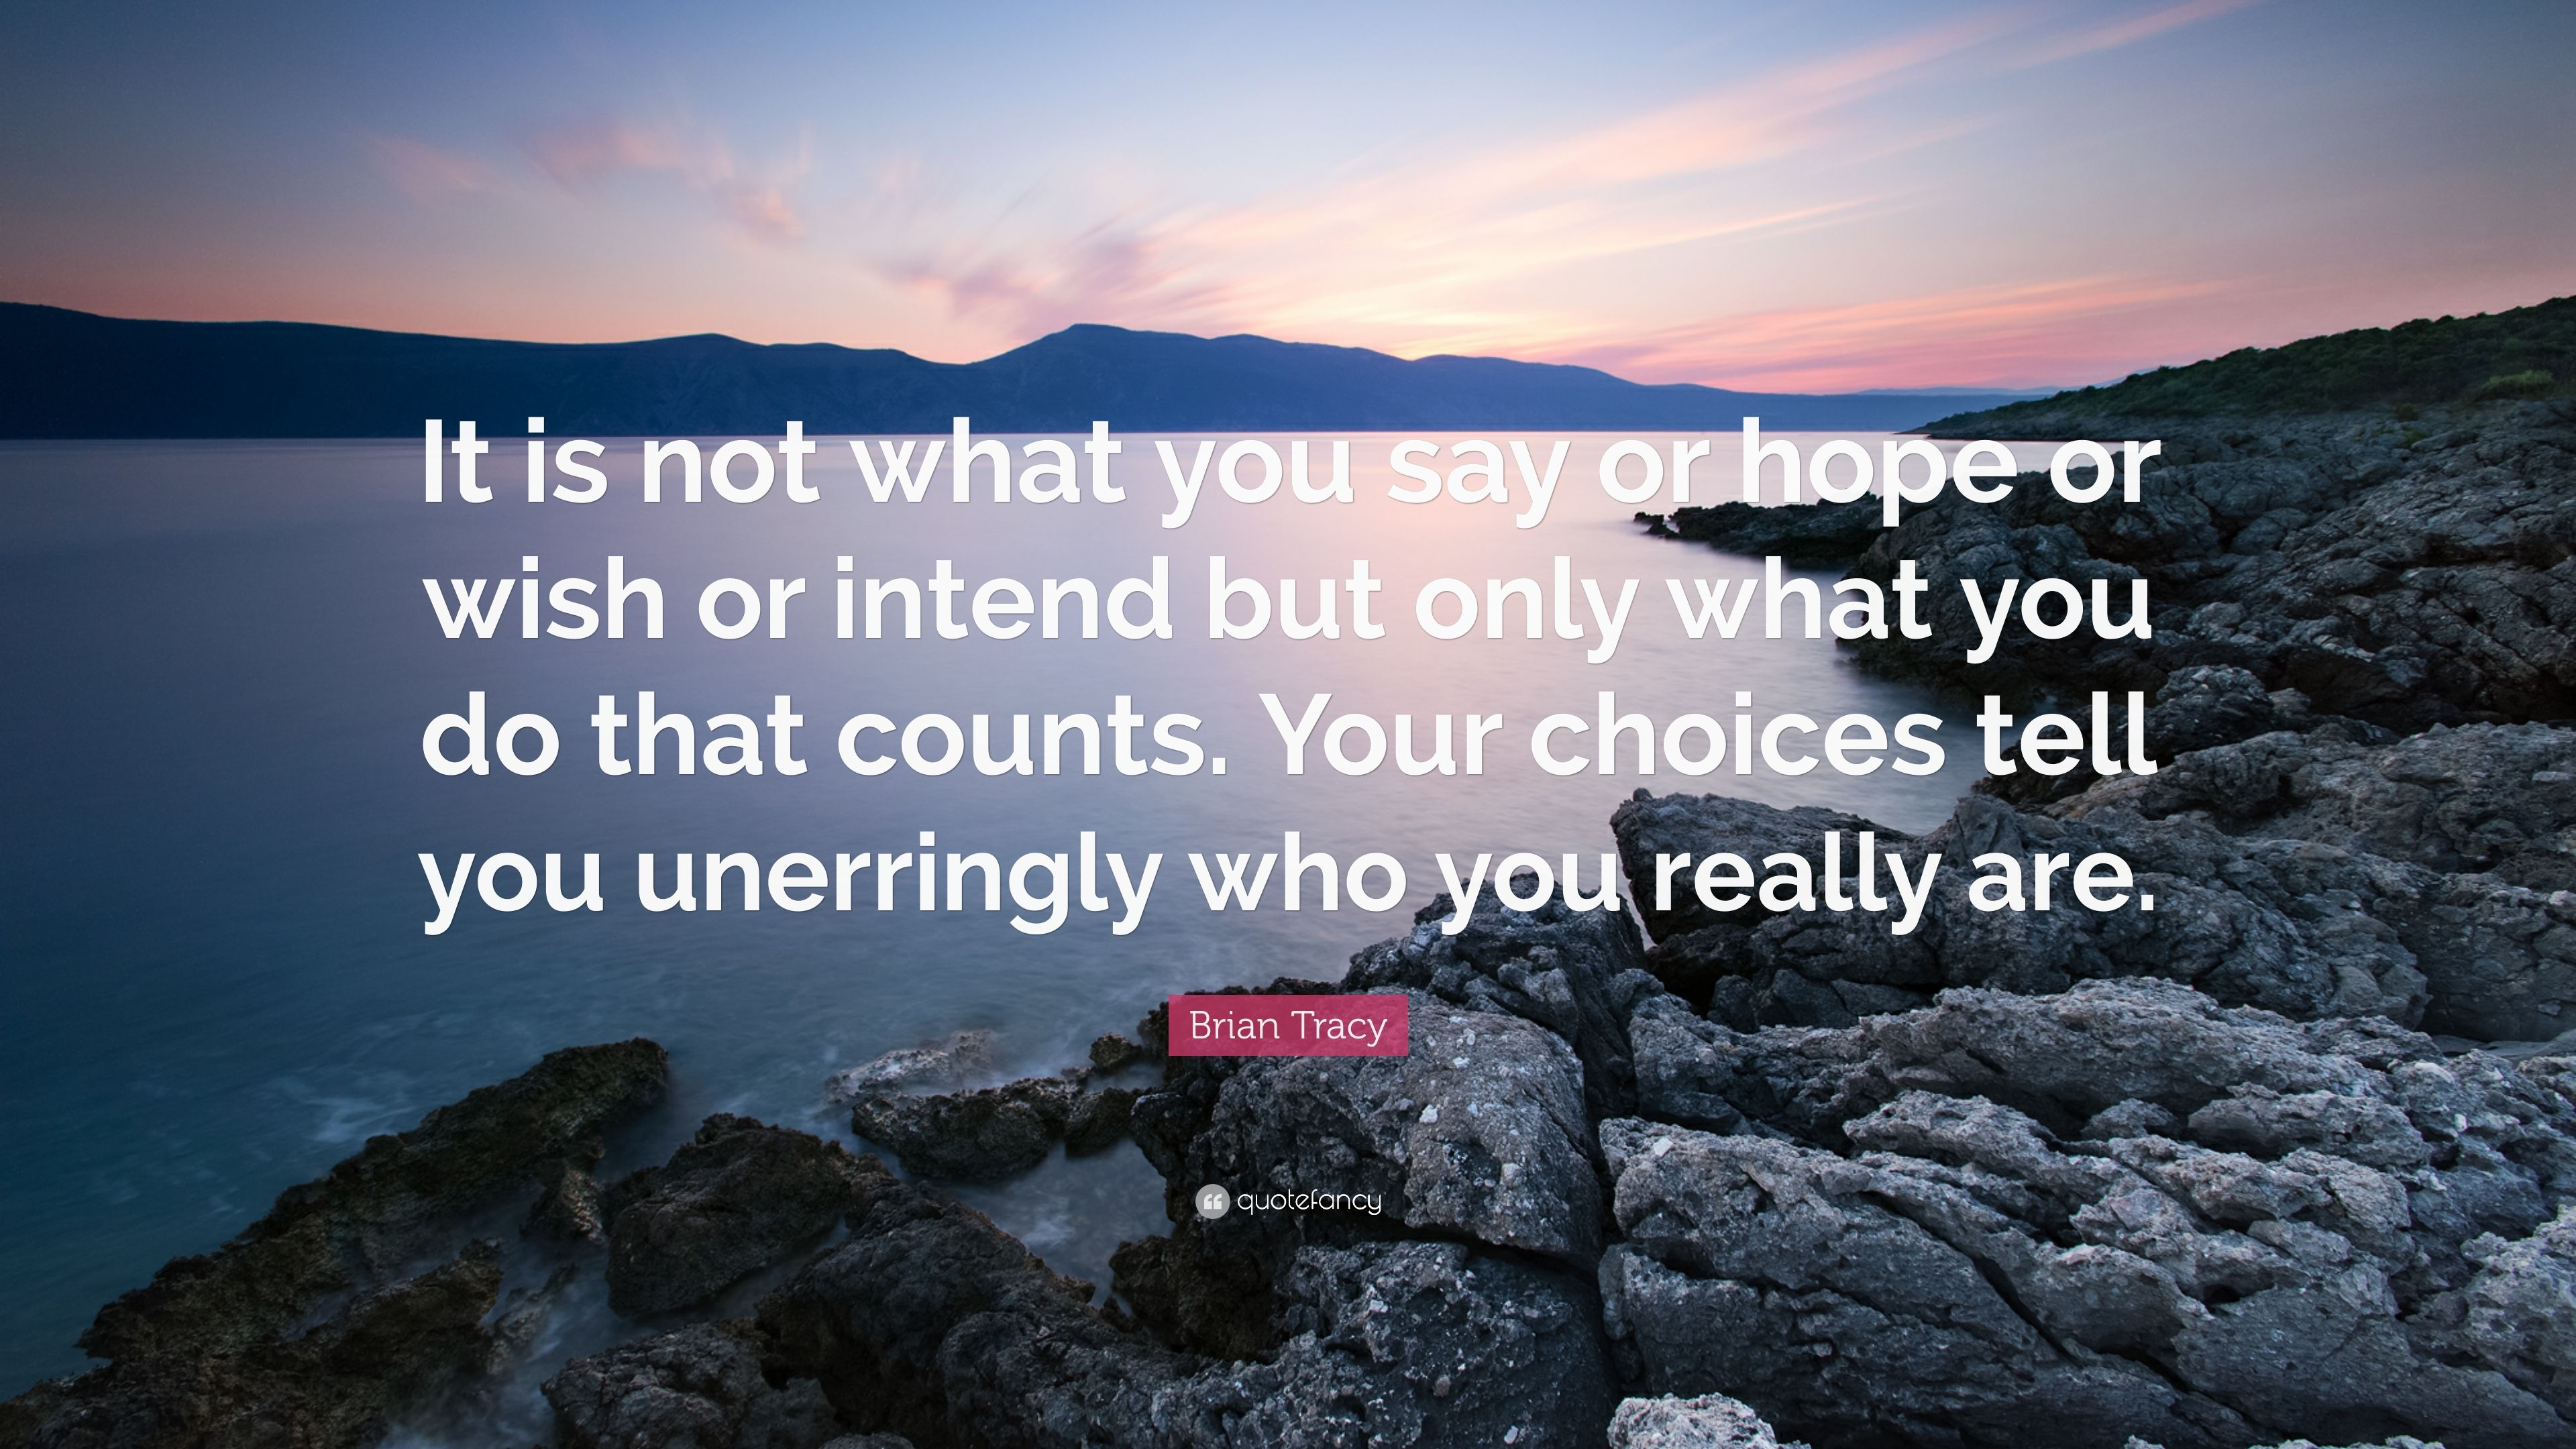 Brian Tracy Quote It Is Not What You Say Or Hope Or Wish Or Intend